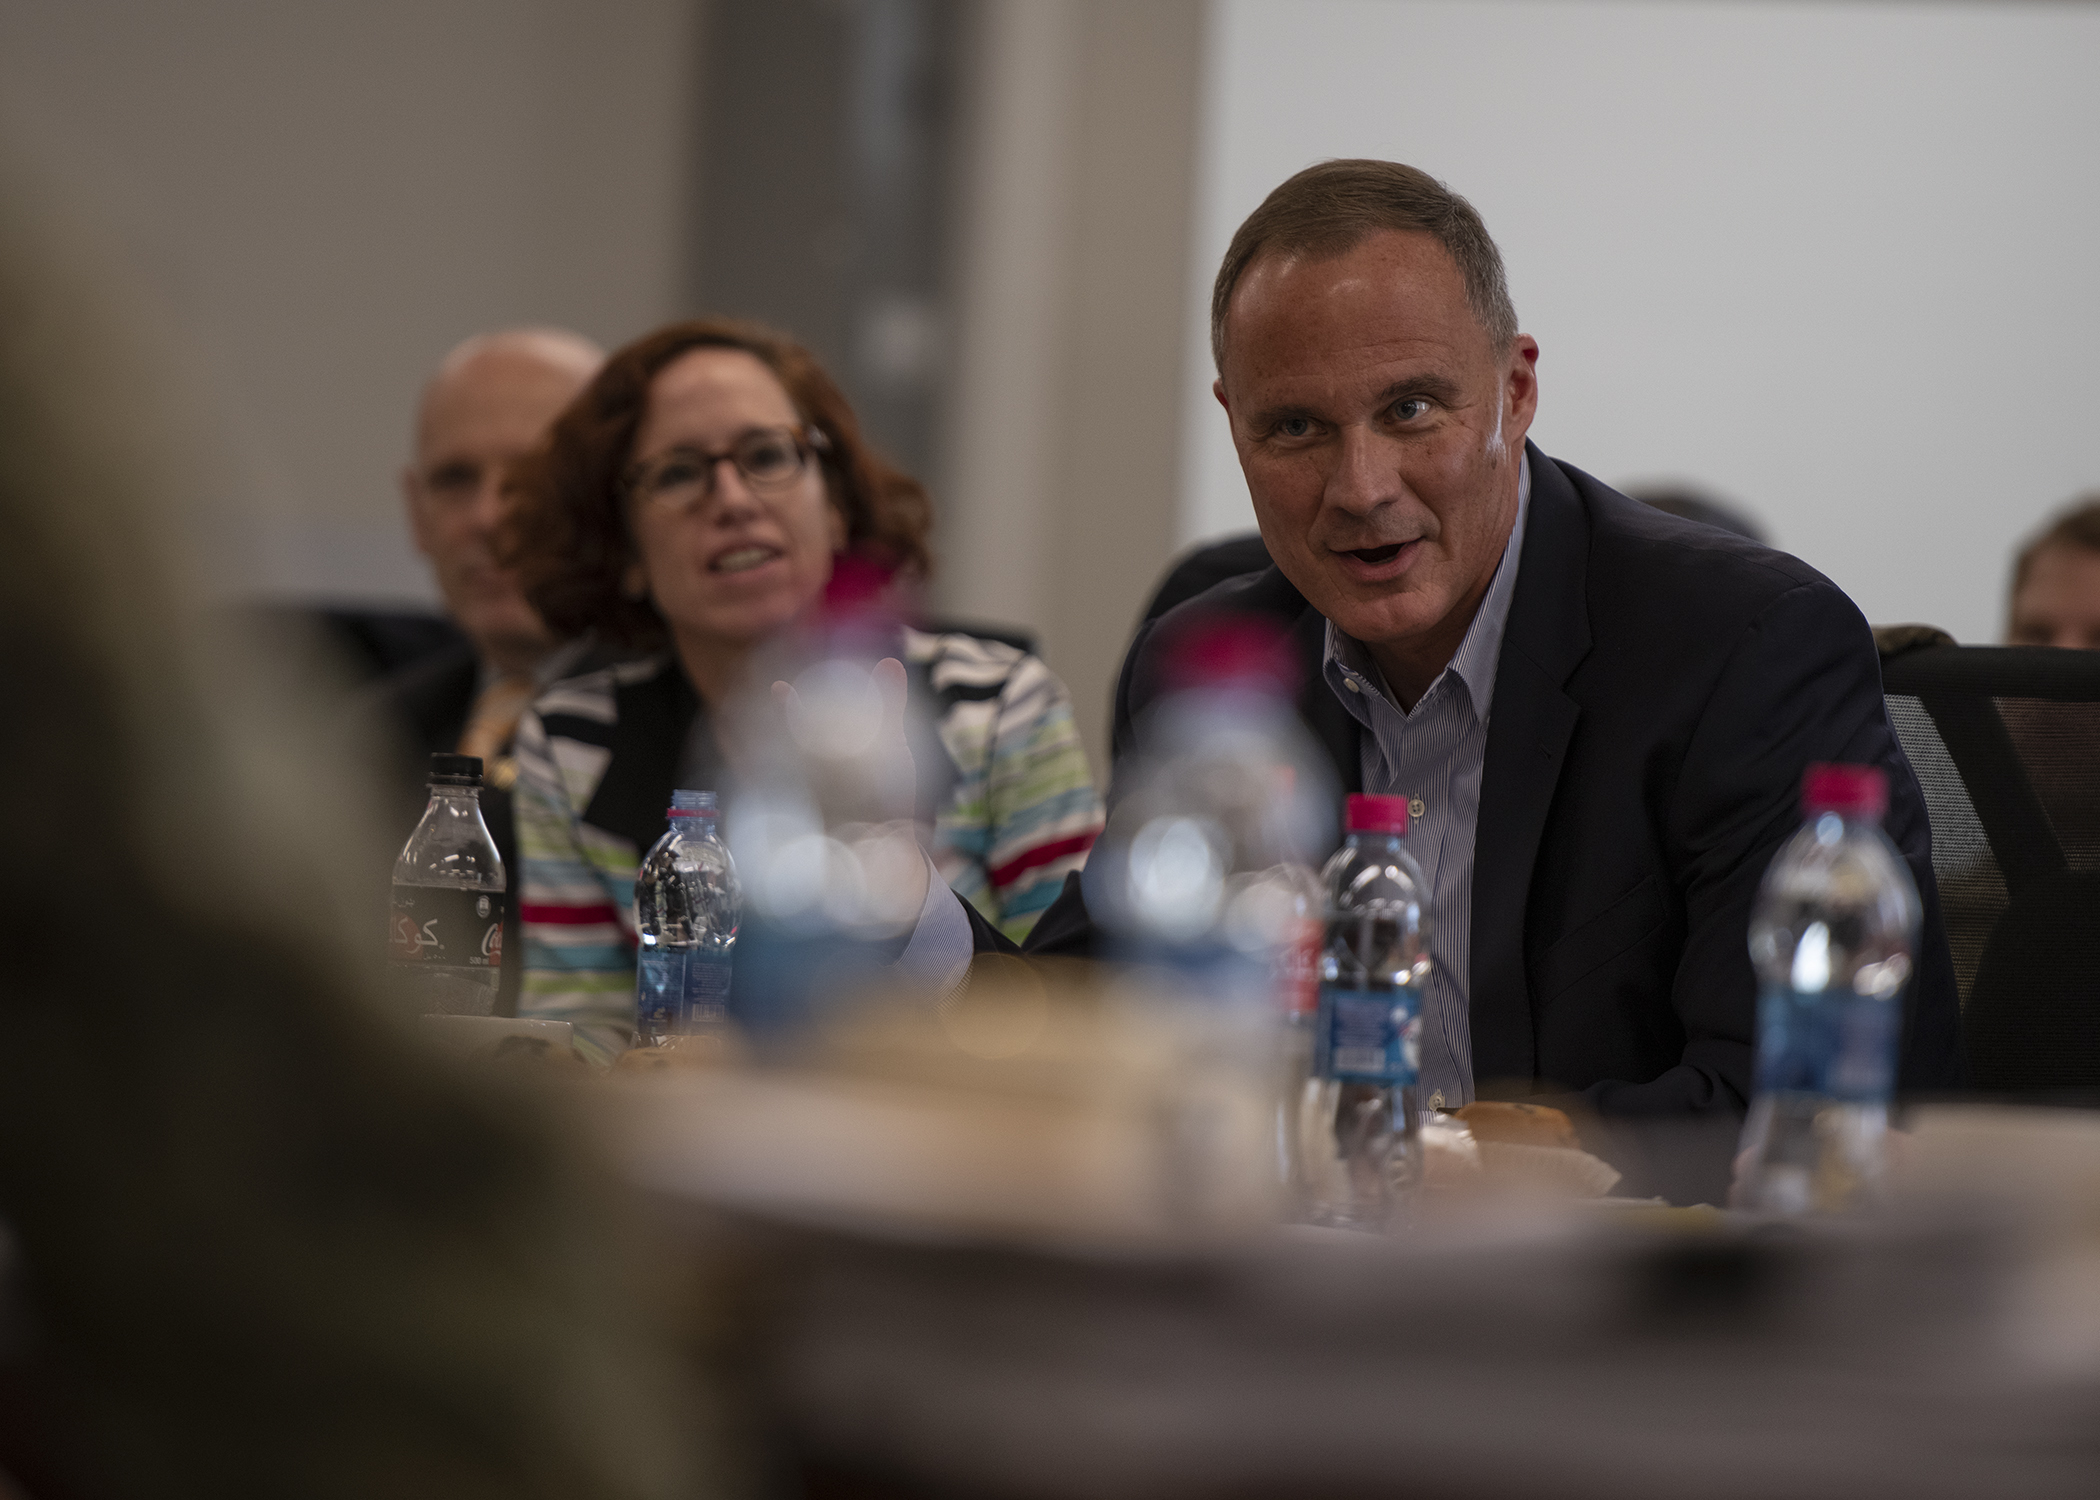 "Amb. Michael Raynor, U.S. Ambassador to Ethiopia, presents thoughts after a briefing titled ""Triggers of Regional Instability"" during the East Africa Security Forum (EASF) at Camp Lemonnier, Djibouti, Dec. 11, 2018. The EASF is an annual opportunity for CJTF-HOA and interagency leaders to sync, assess and align efforts to develop synchronized courses of action that support common goals. (U.S. Air Force photo by Tech. Sgt. Shawn Nickel)"